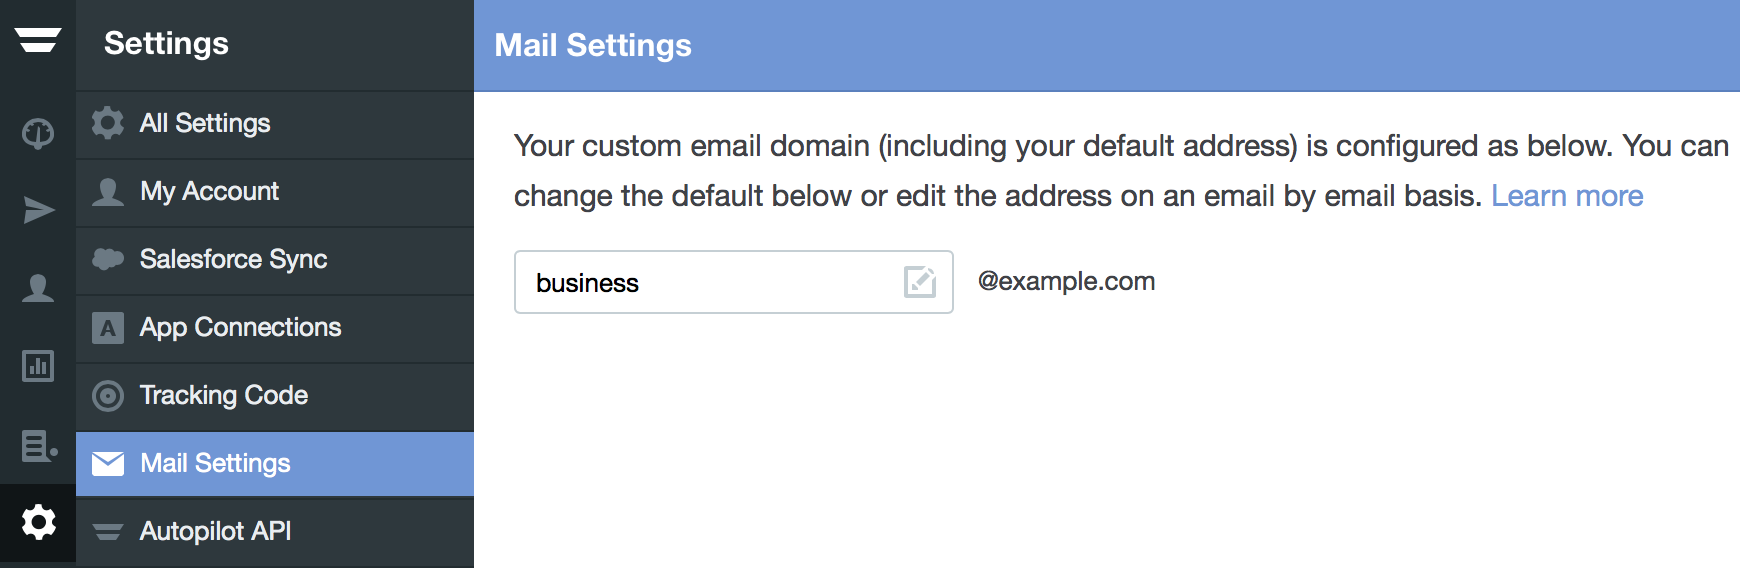 Configure your custom email domain – Home